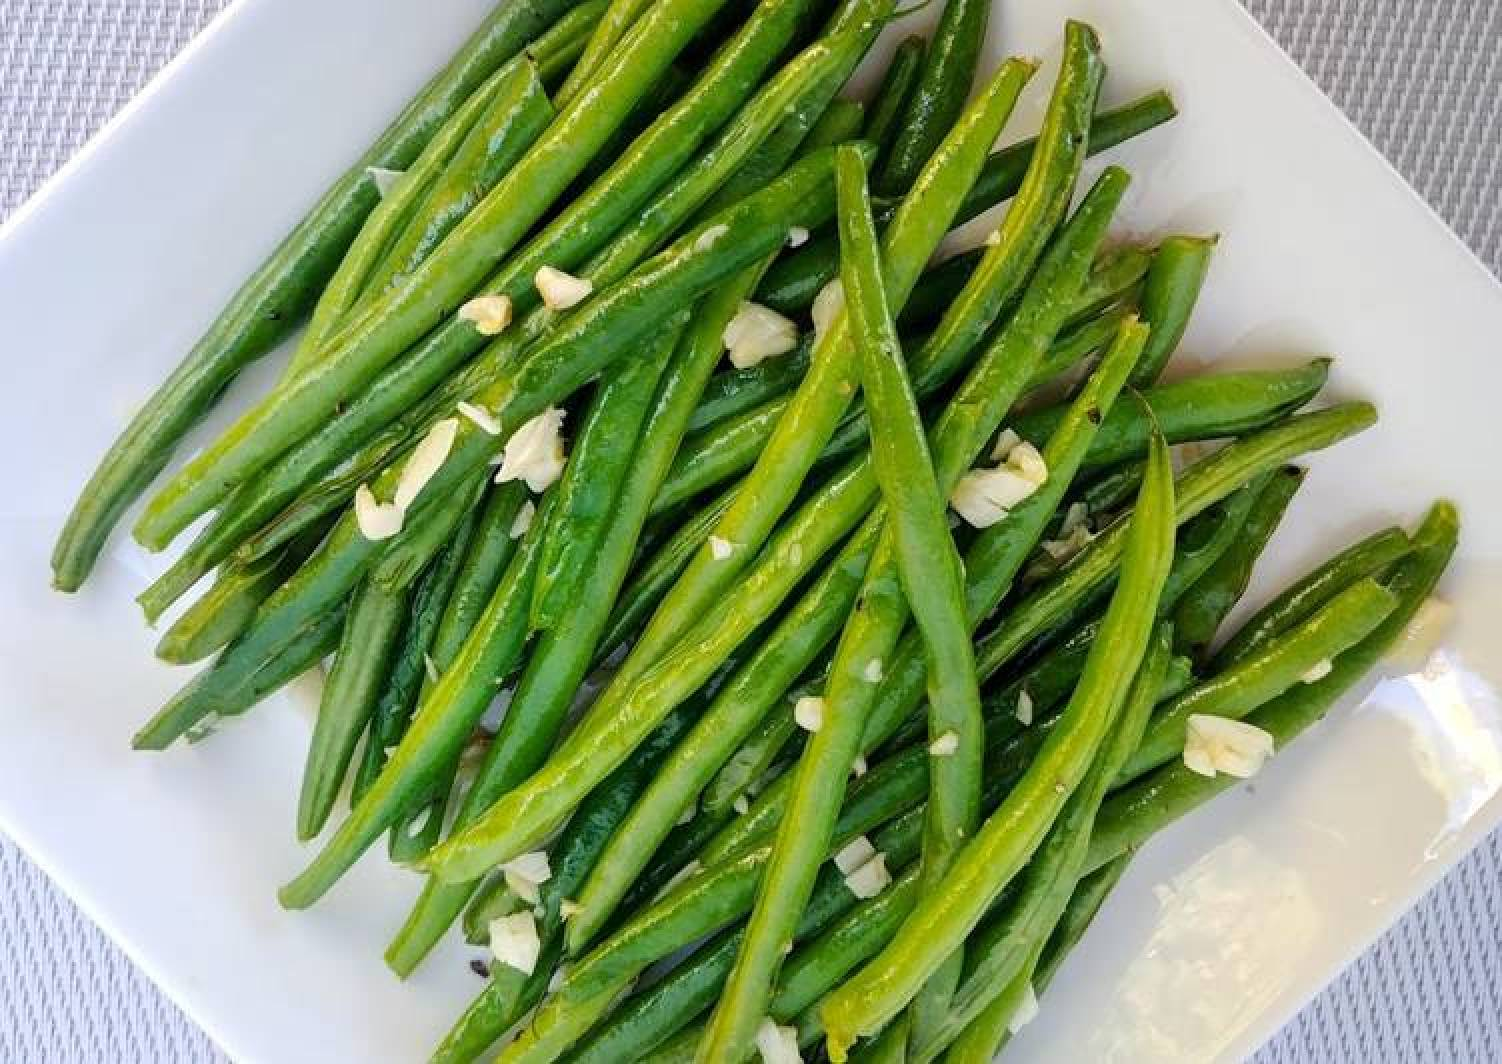 Buttered Garlic Green Beans